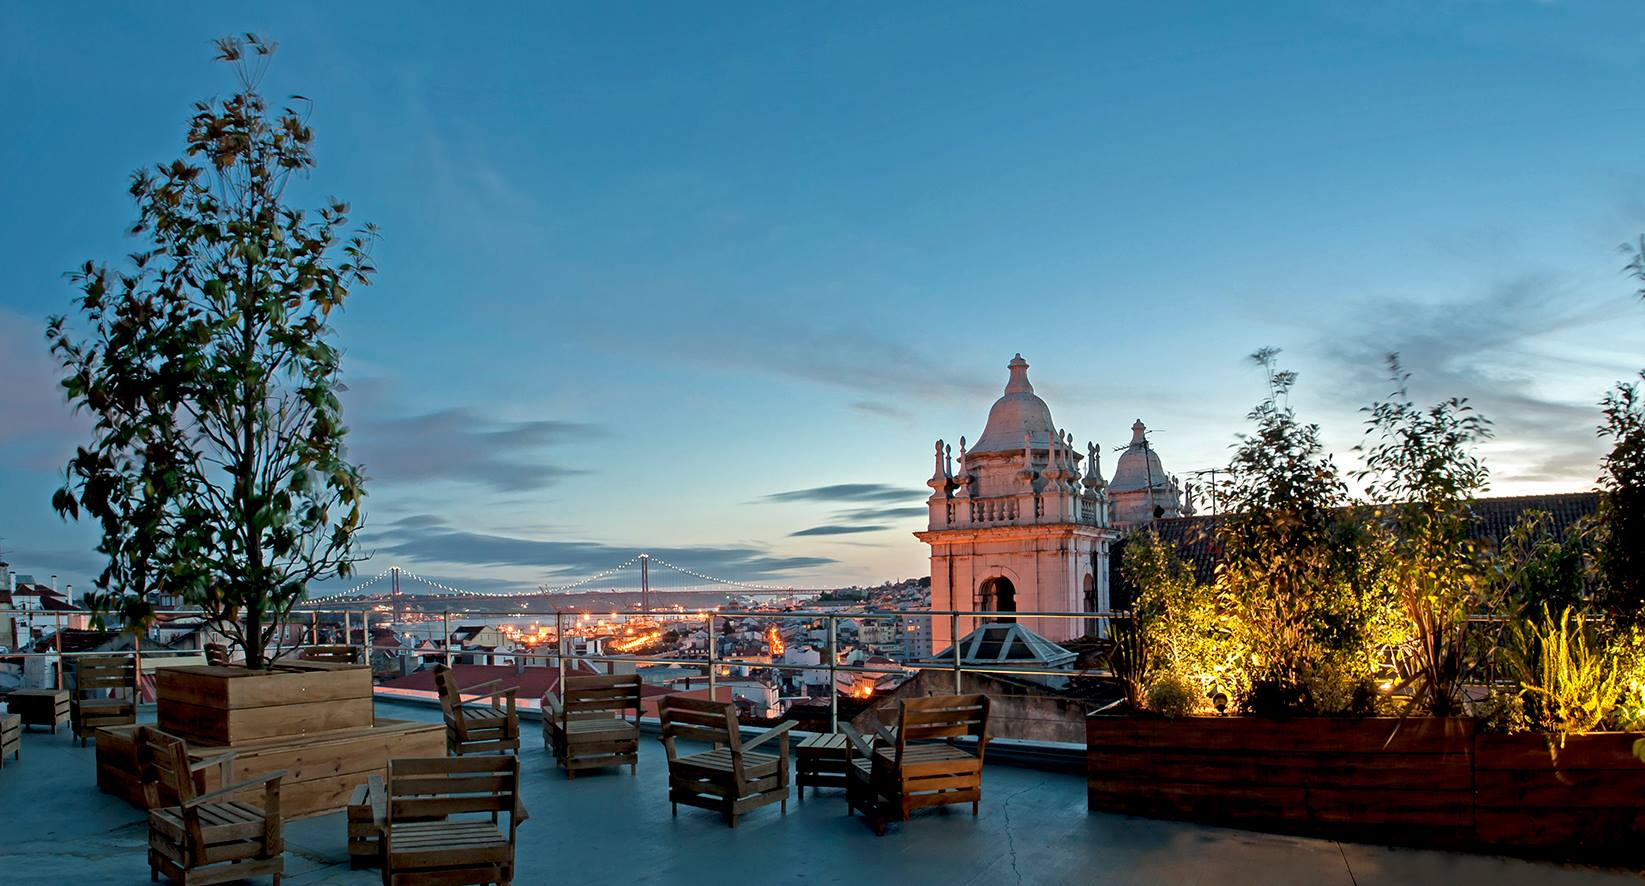 The Best Rooftop Bars in Portugal best rooftop bars in portugal The Best Rooftop Bars in Portugal PARK bar 2